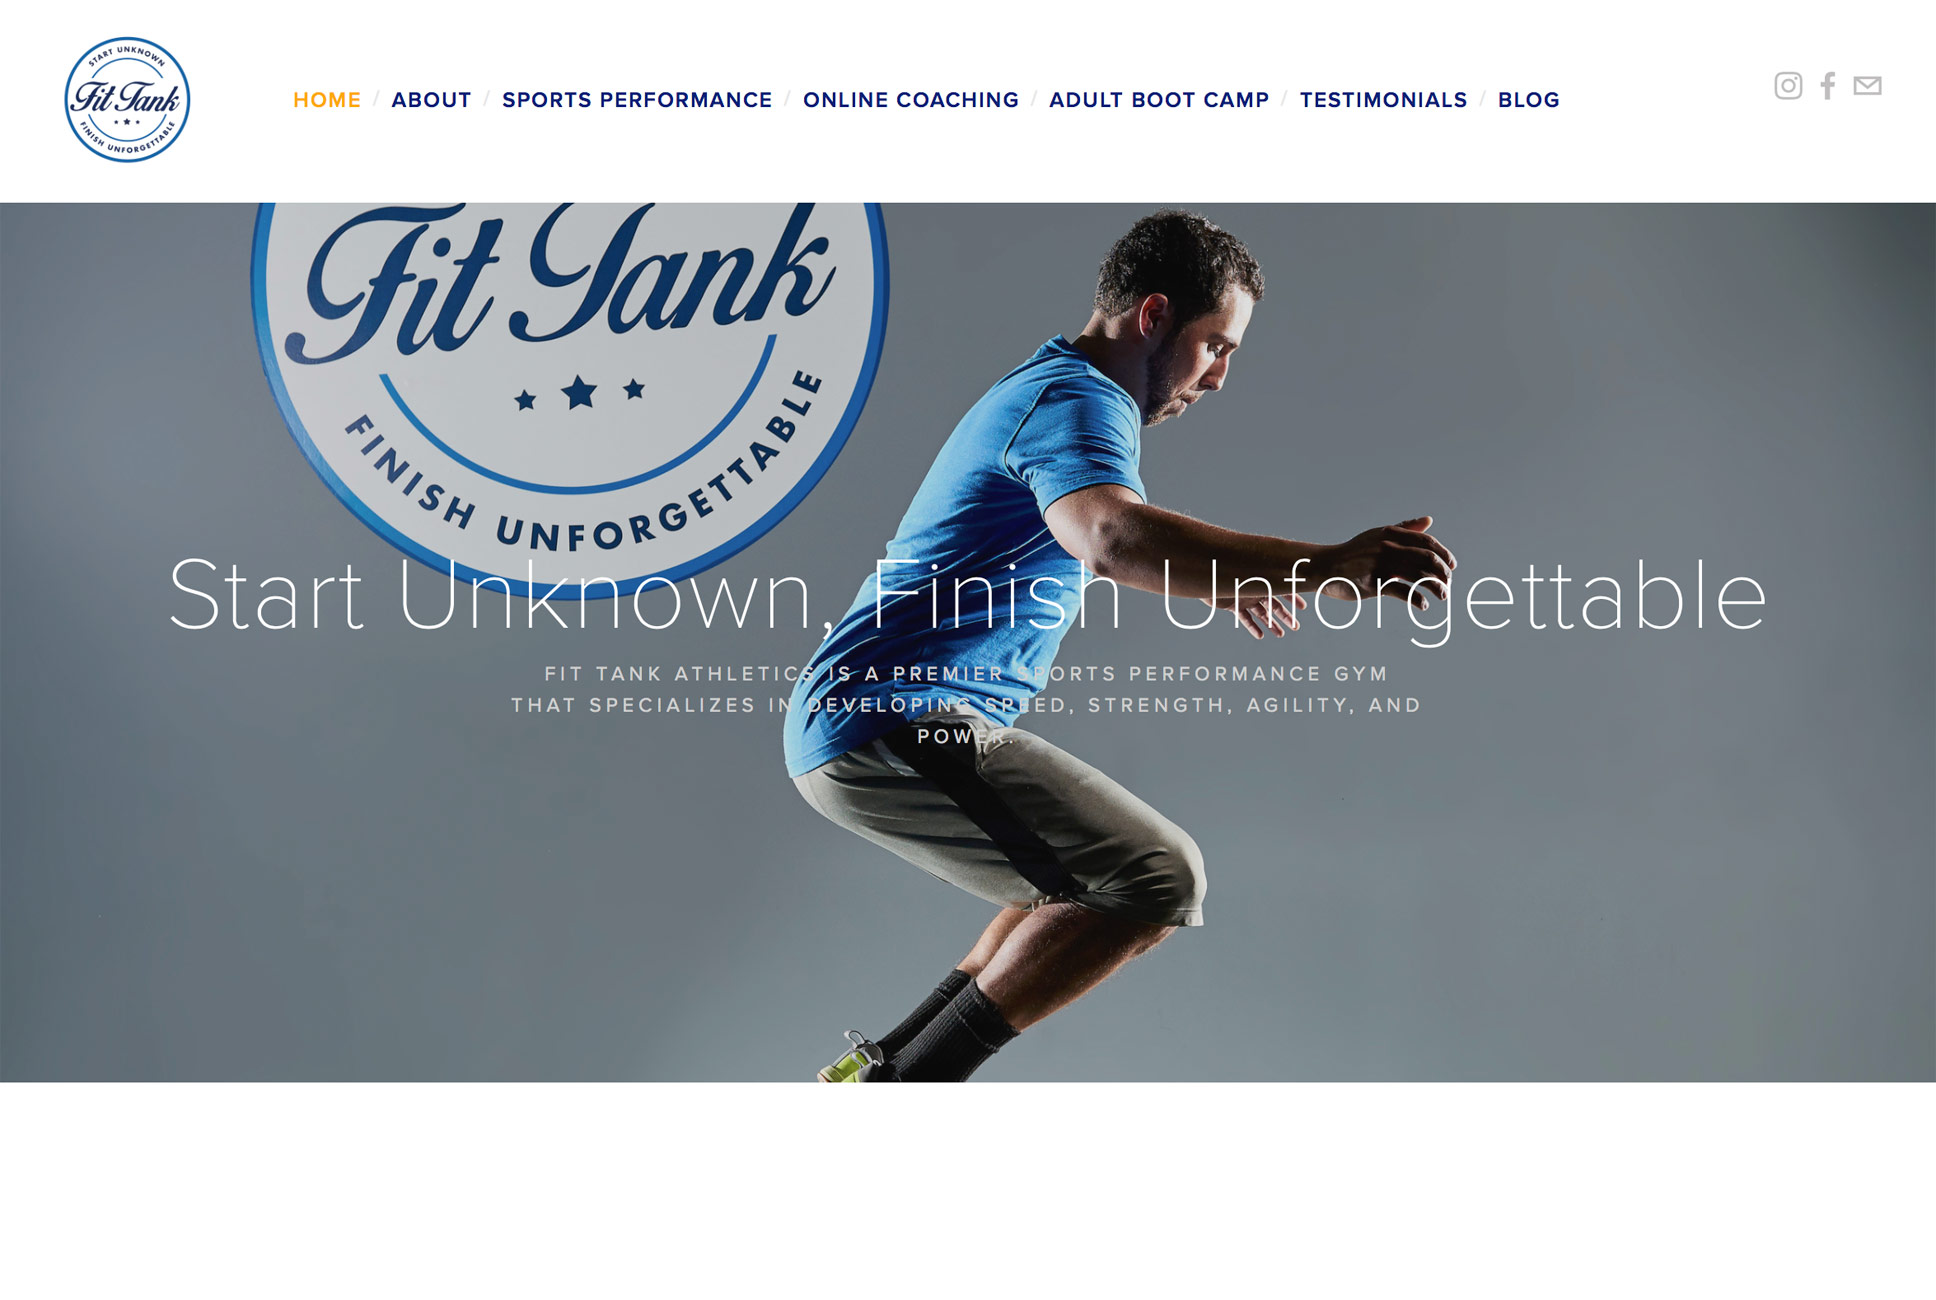 Fit Tank homepage with athlete jumping.